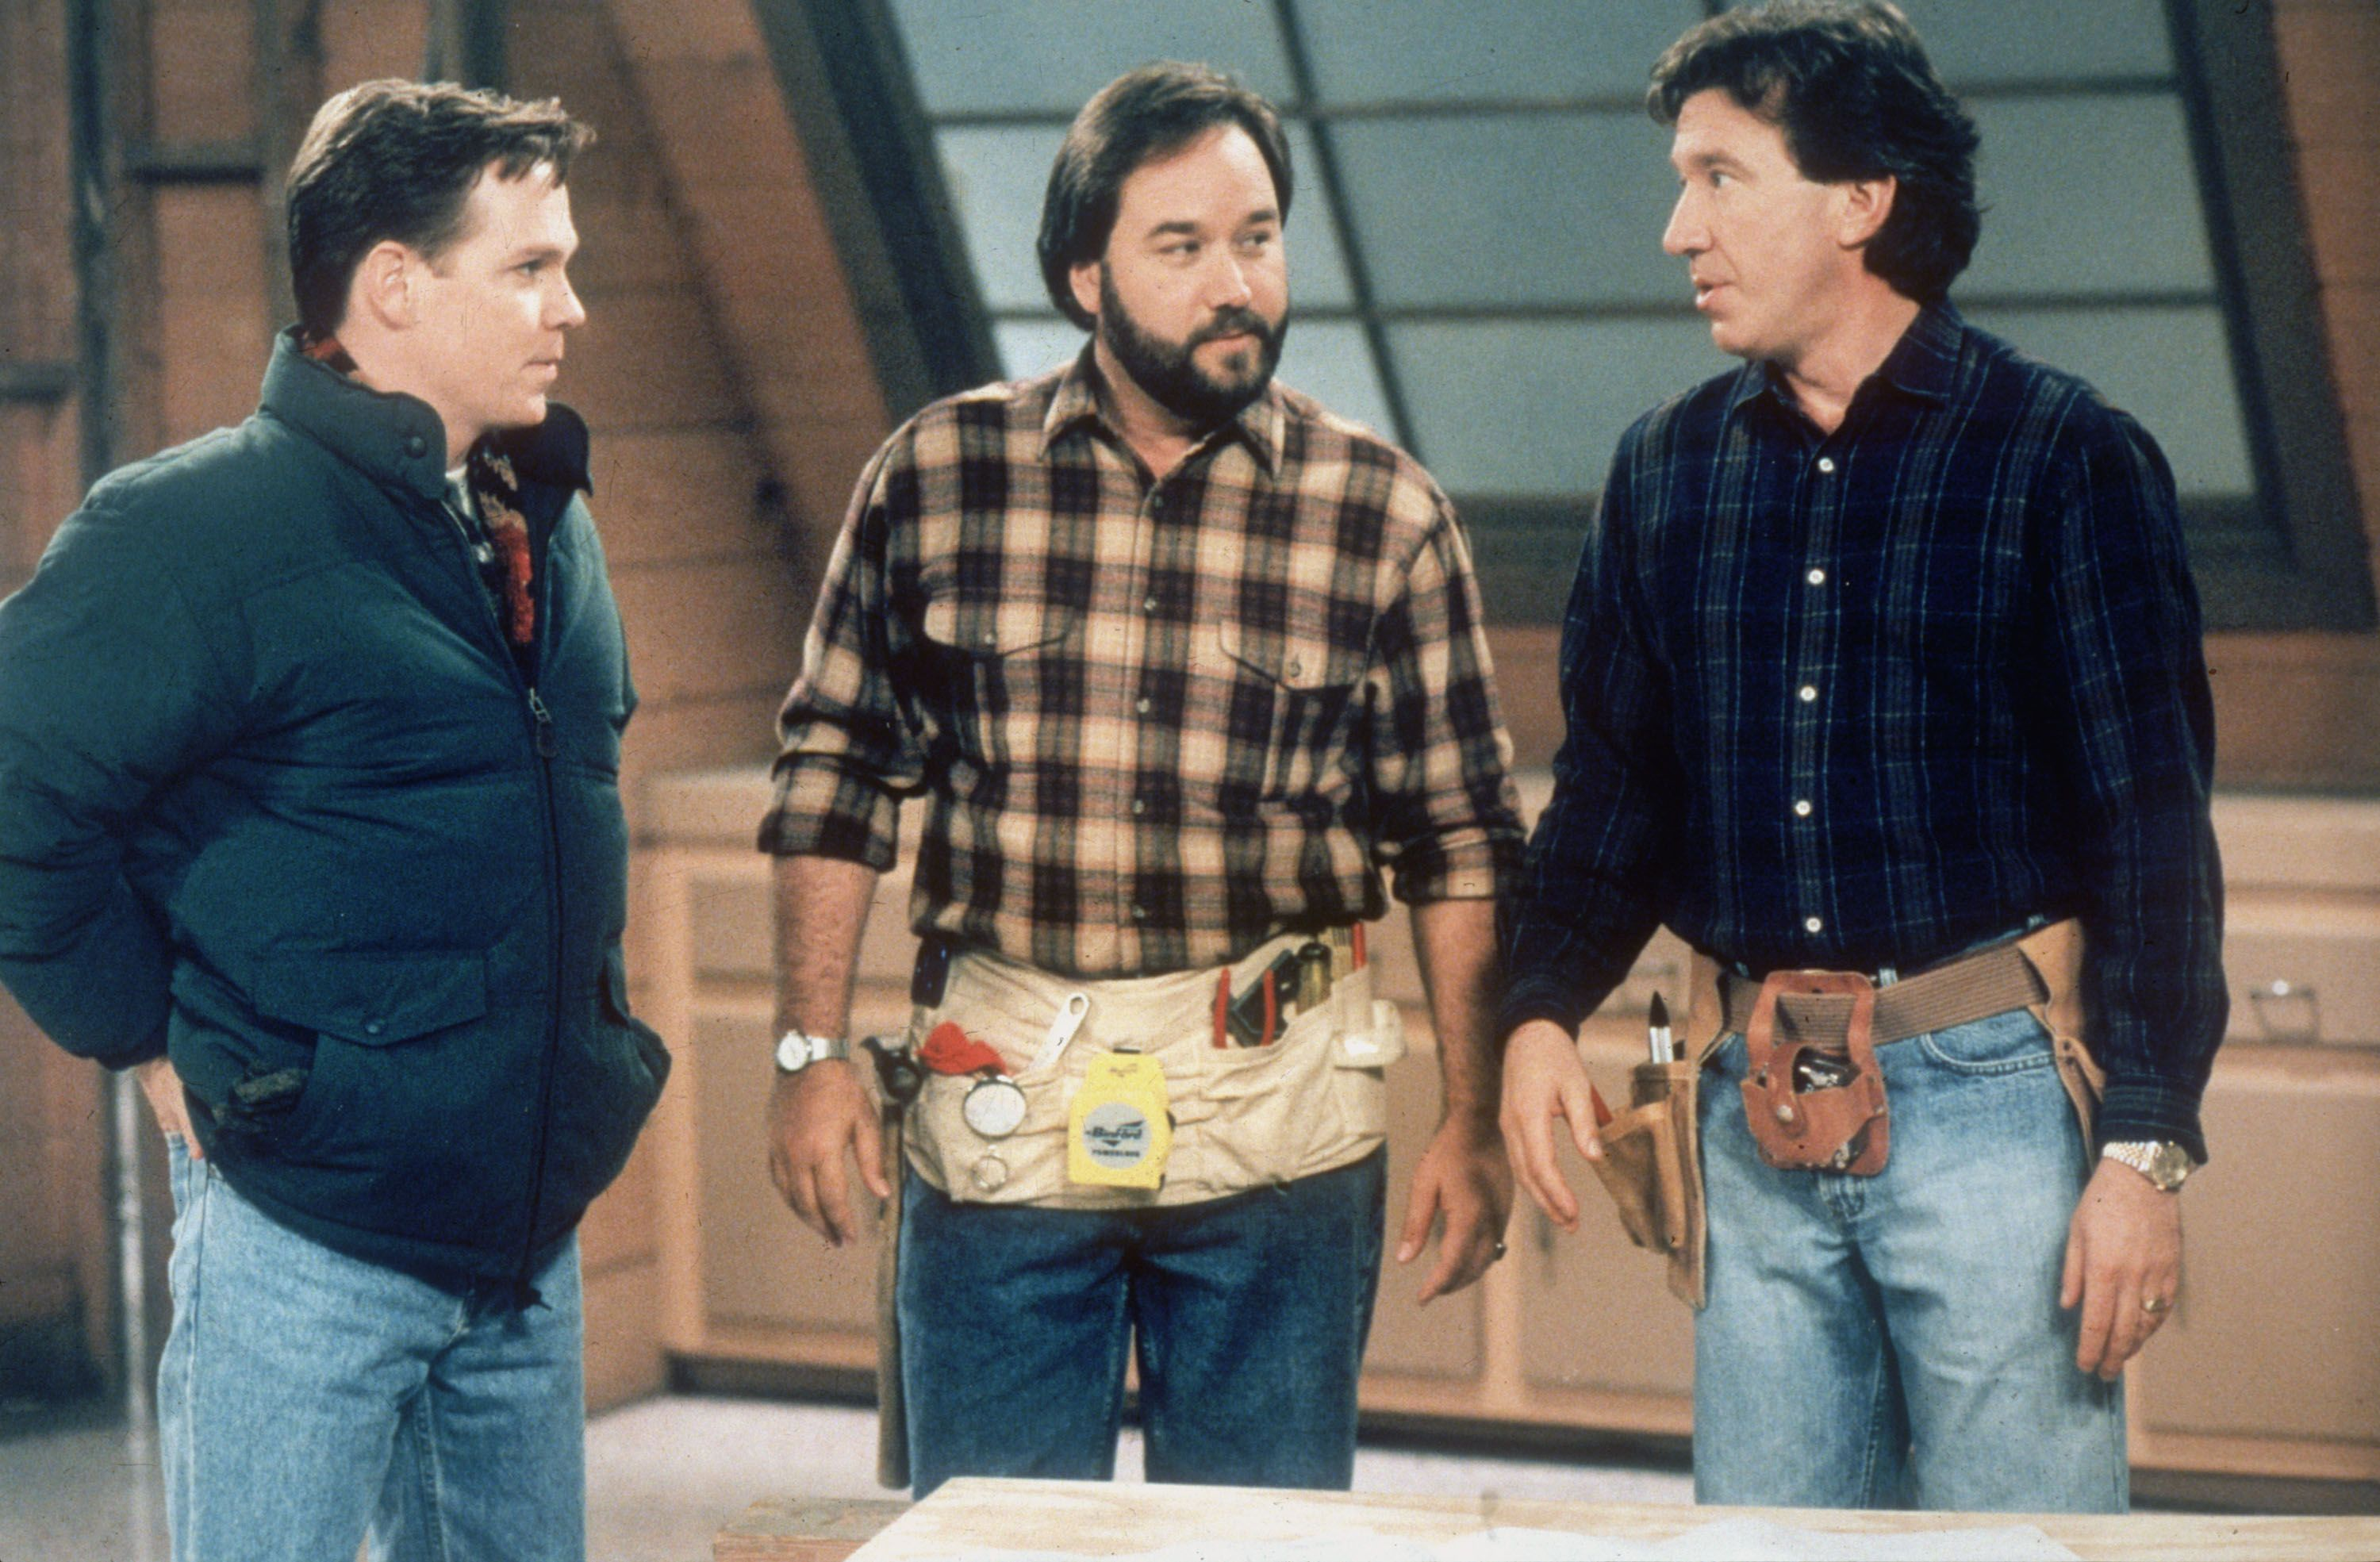 Home Improvement Tv Show Tim Allen Richard Karn And William O Leary As Tim S Brother Marty Home Improvement Tv Show Home Improvement Richard Karn